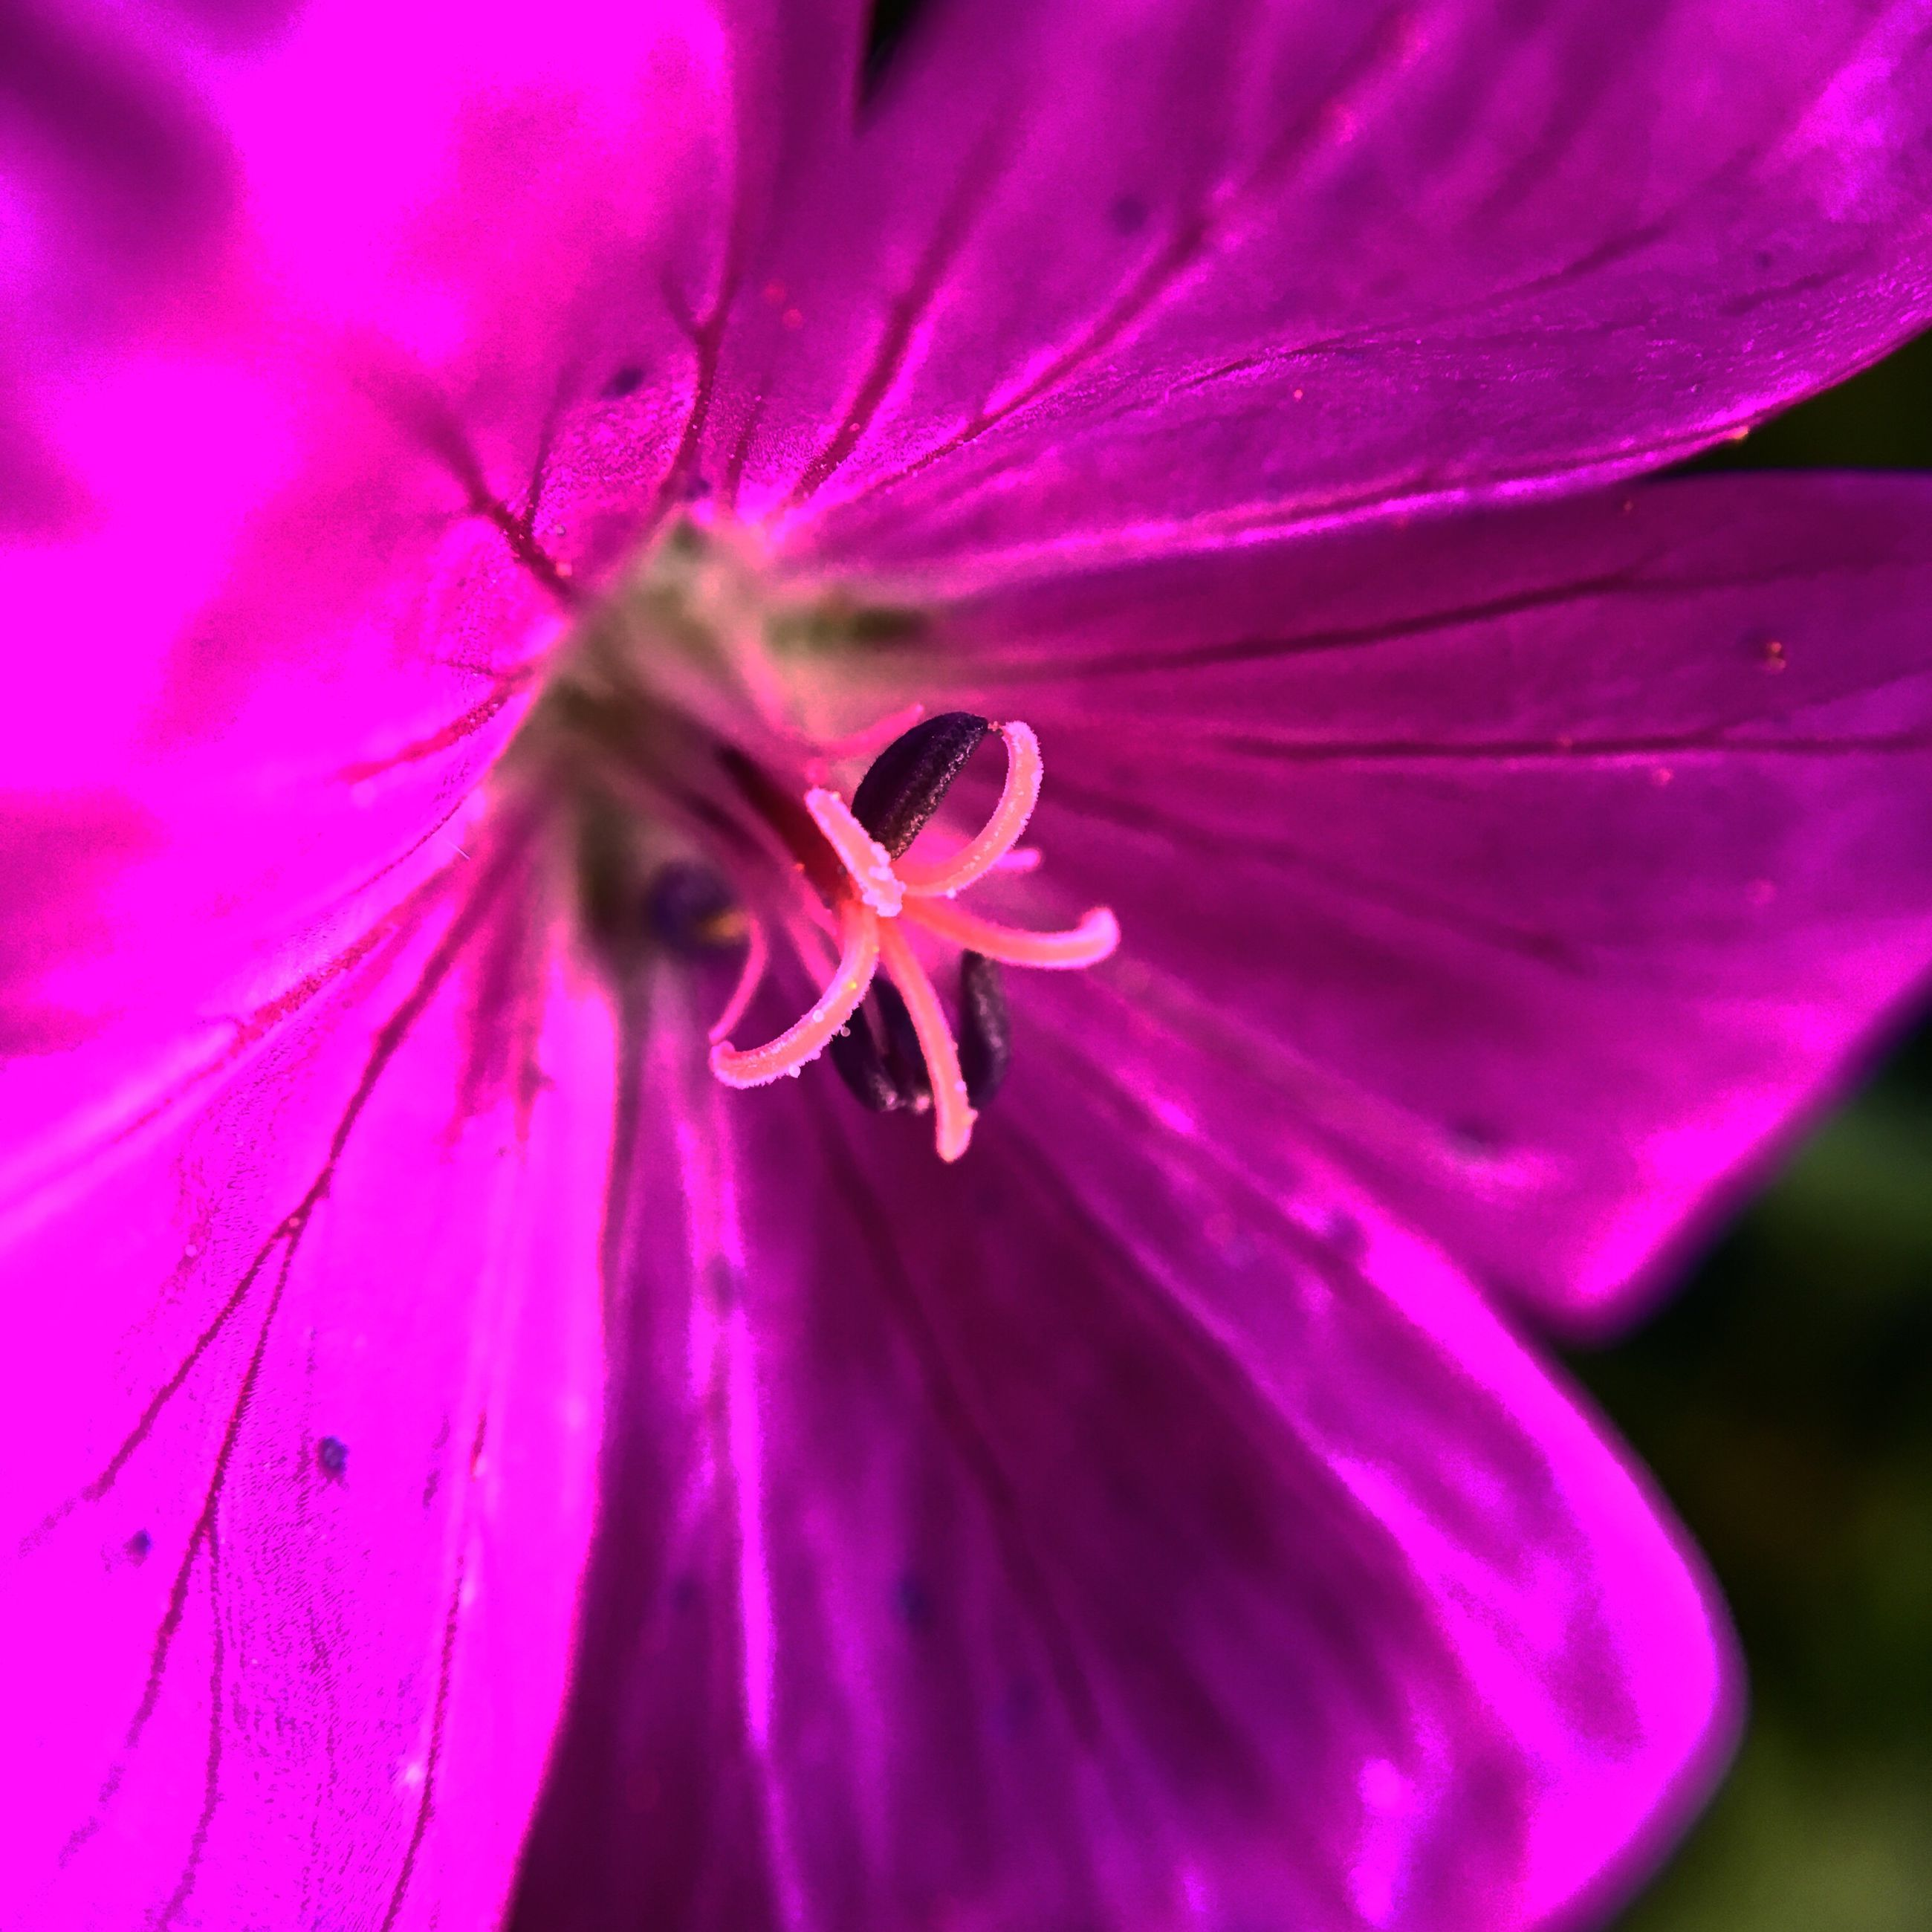 flower, petal, freshness, flower head, fragility, growth, beauty in nature, stamen, close-up, single flower, pink color, nature, purple, pollen, macro, blossom, in bloom, backgrounds, blooming, extreme close-up